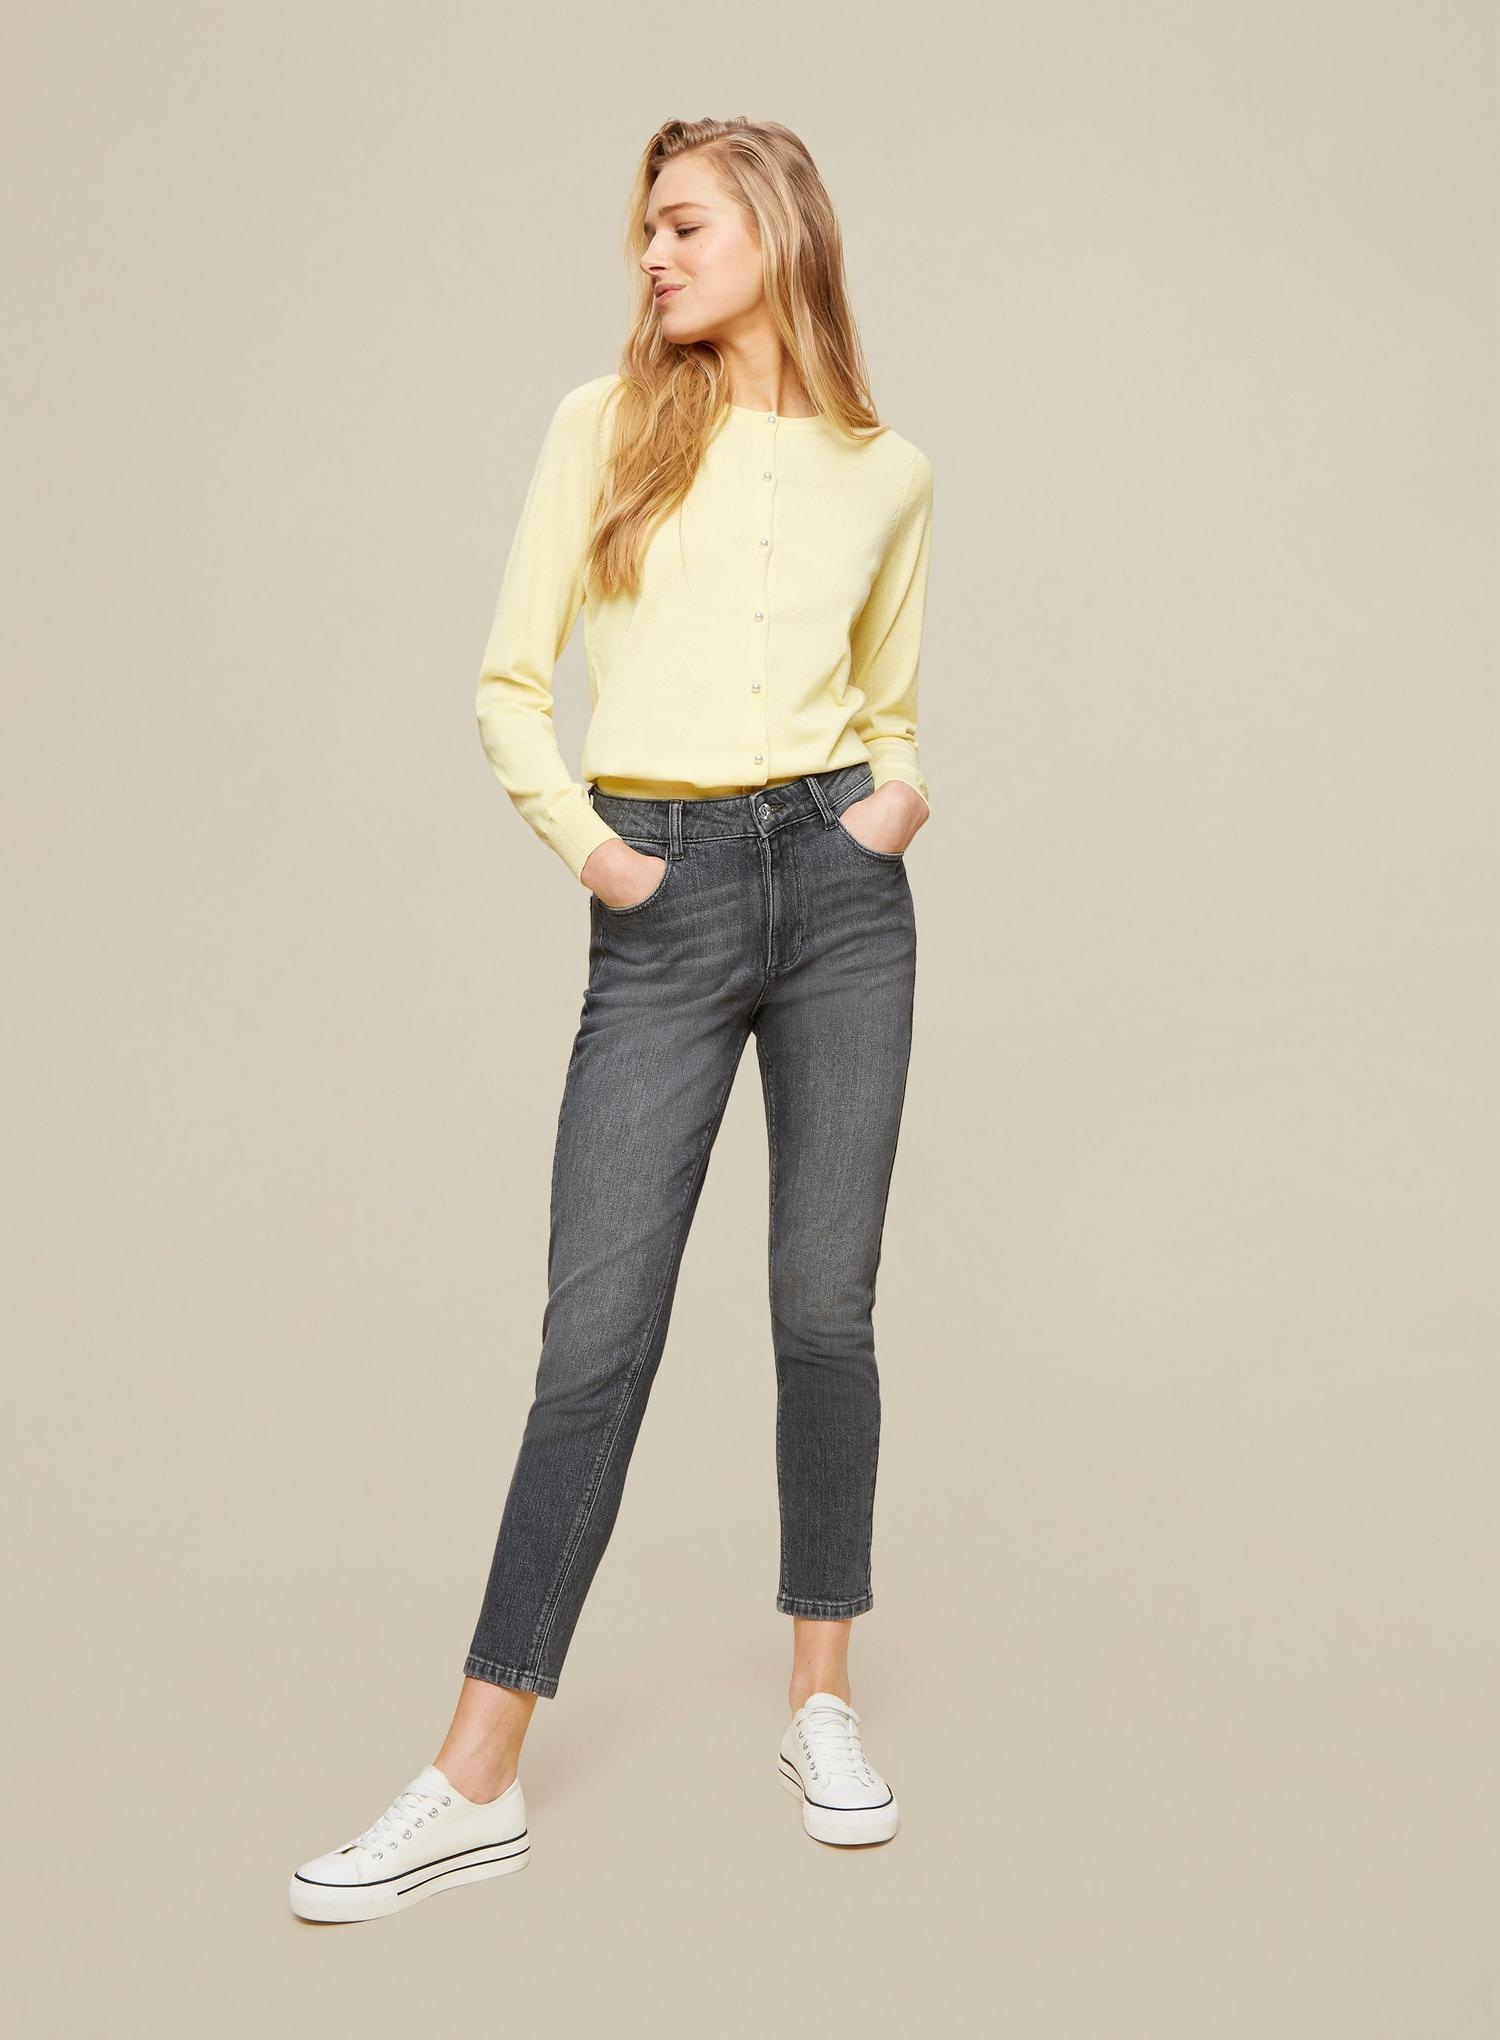 131 Grey Regular Mom Jeans With Organic Cotton image number 3